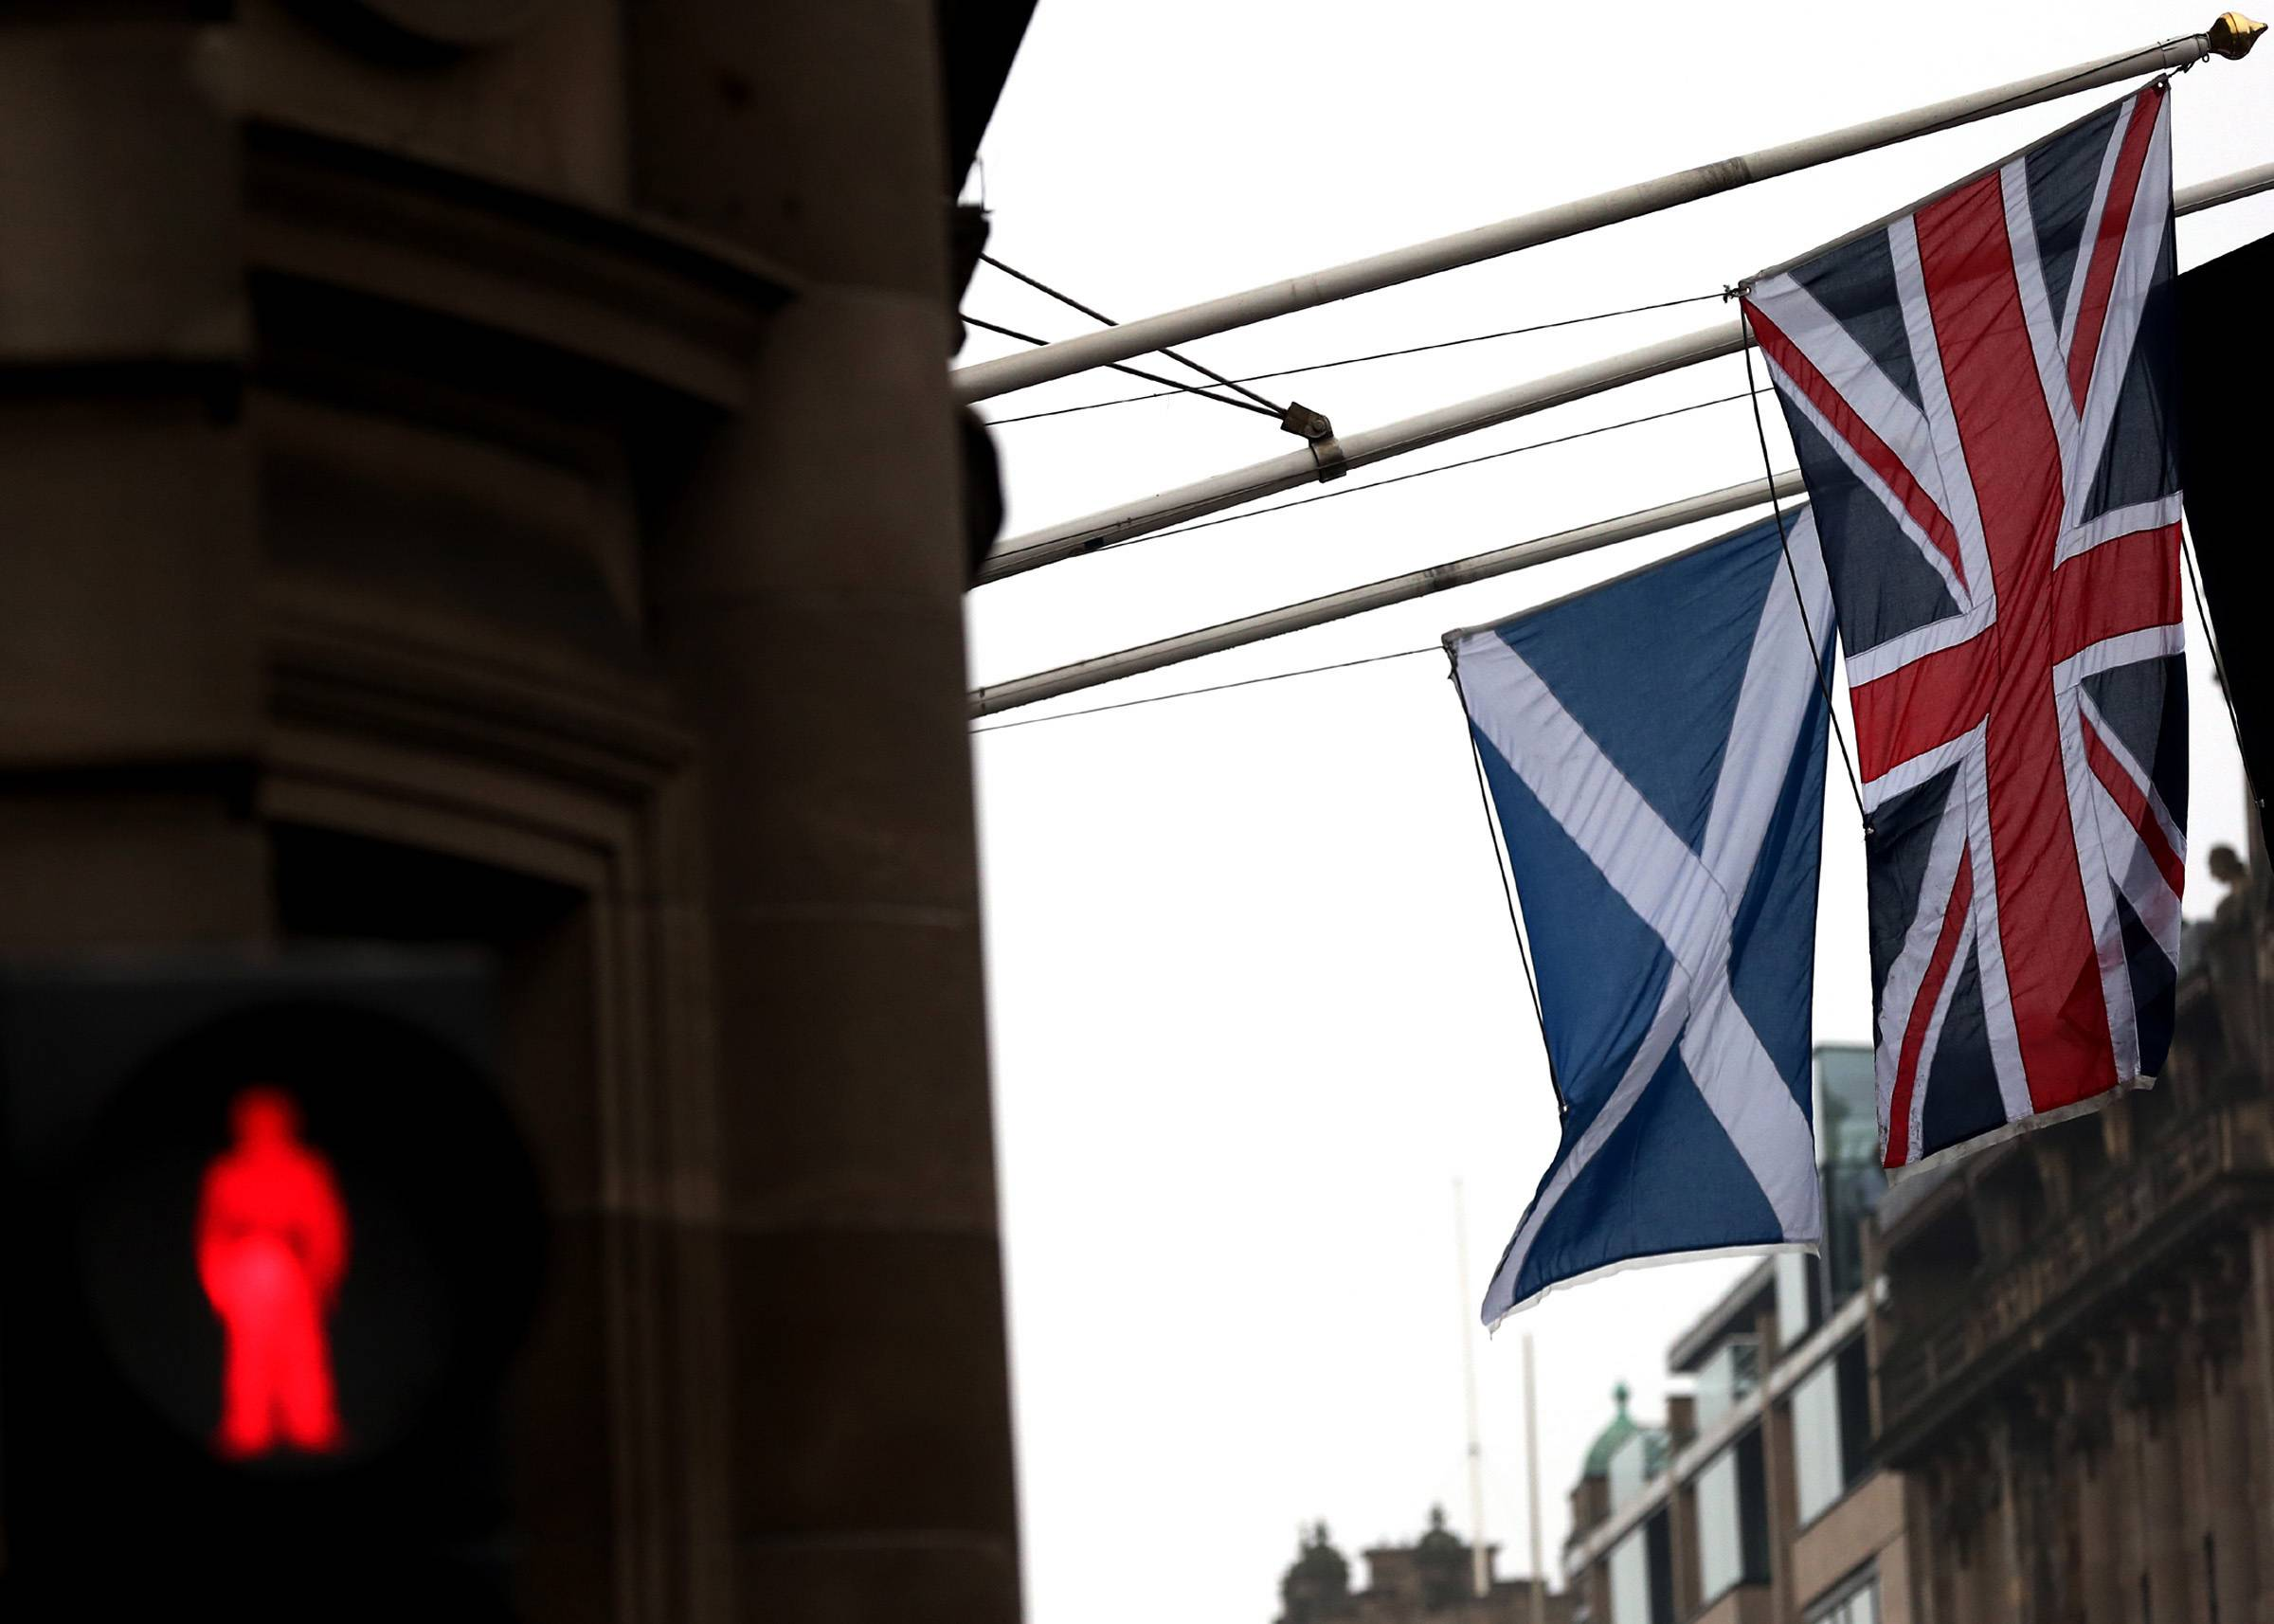 A Saltire and Union Jack flag hang side by side on a building in Edinburgh, Scotland, Friday.